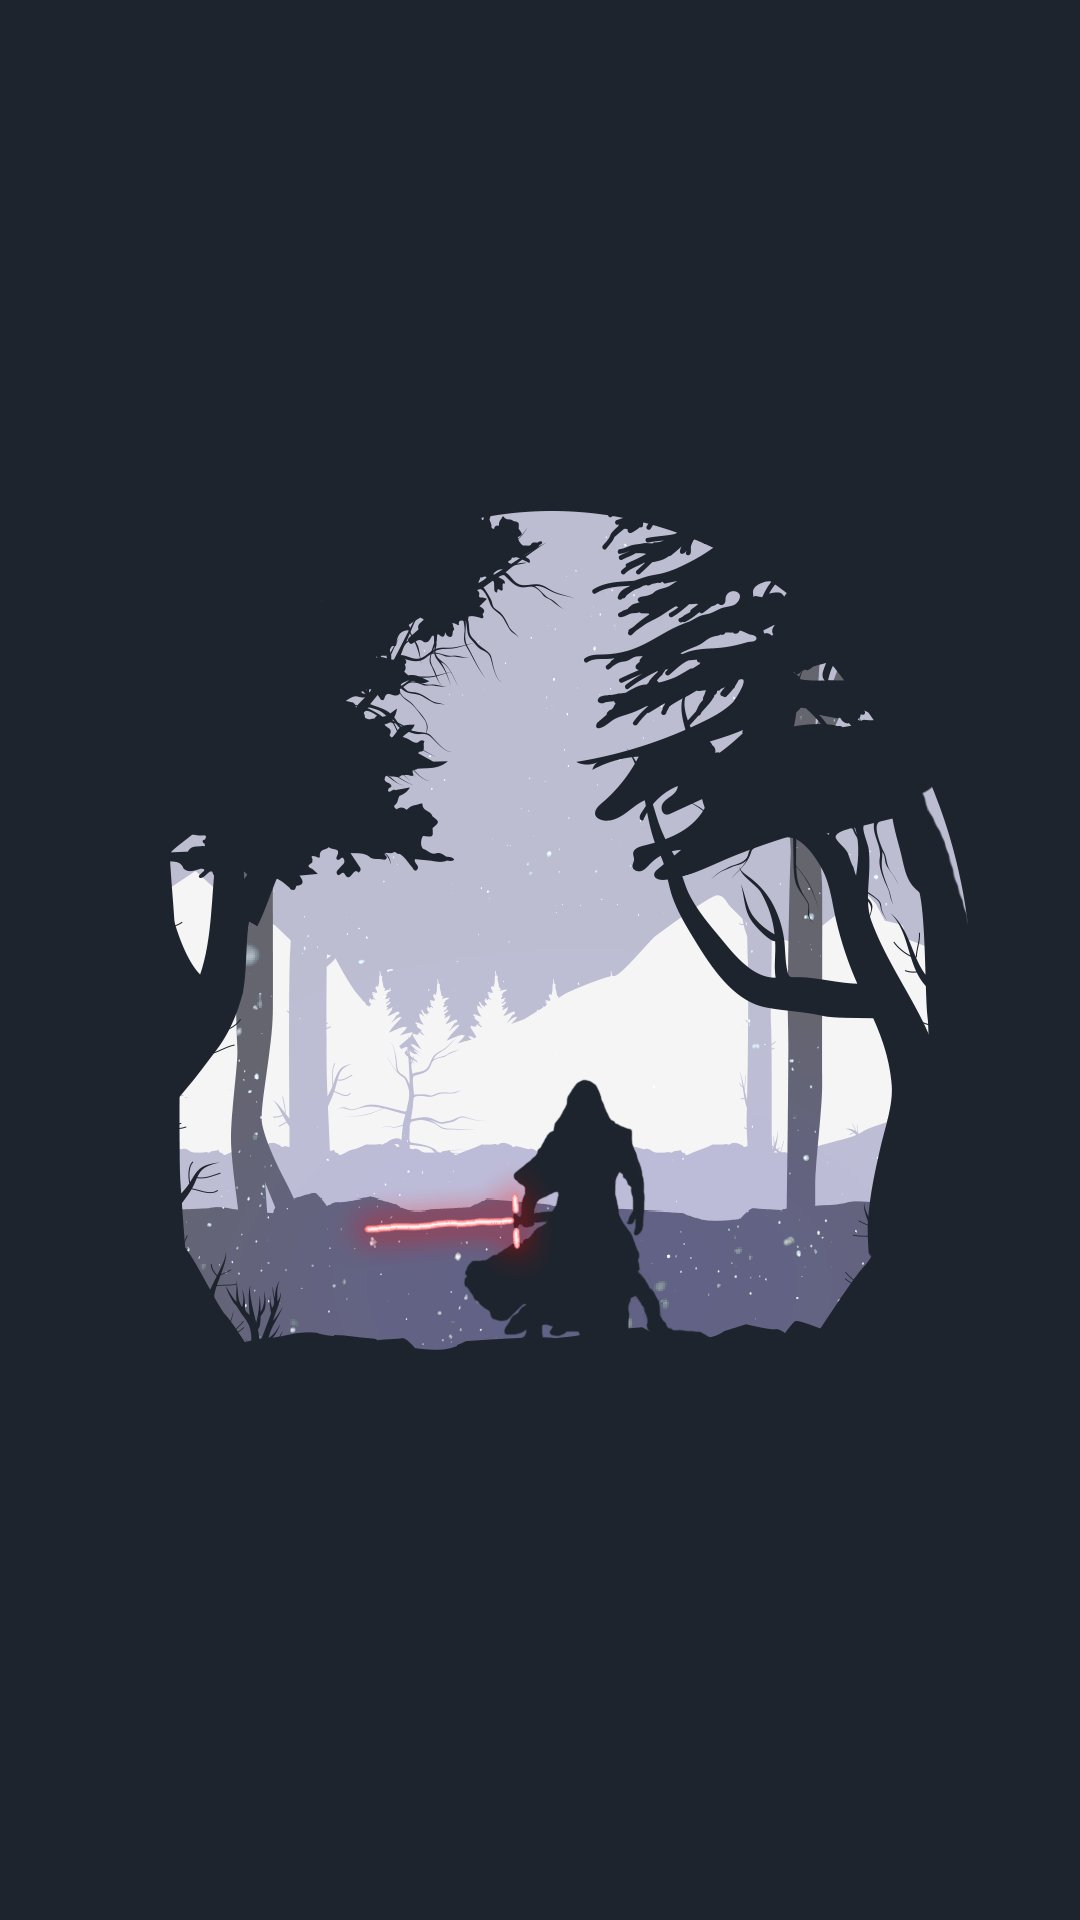 Minimalist Darth Vader Wallpaper Ios In 2020 Star Wars Wallpaper Star Wars Wallpaper Iphone Star Wars Background